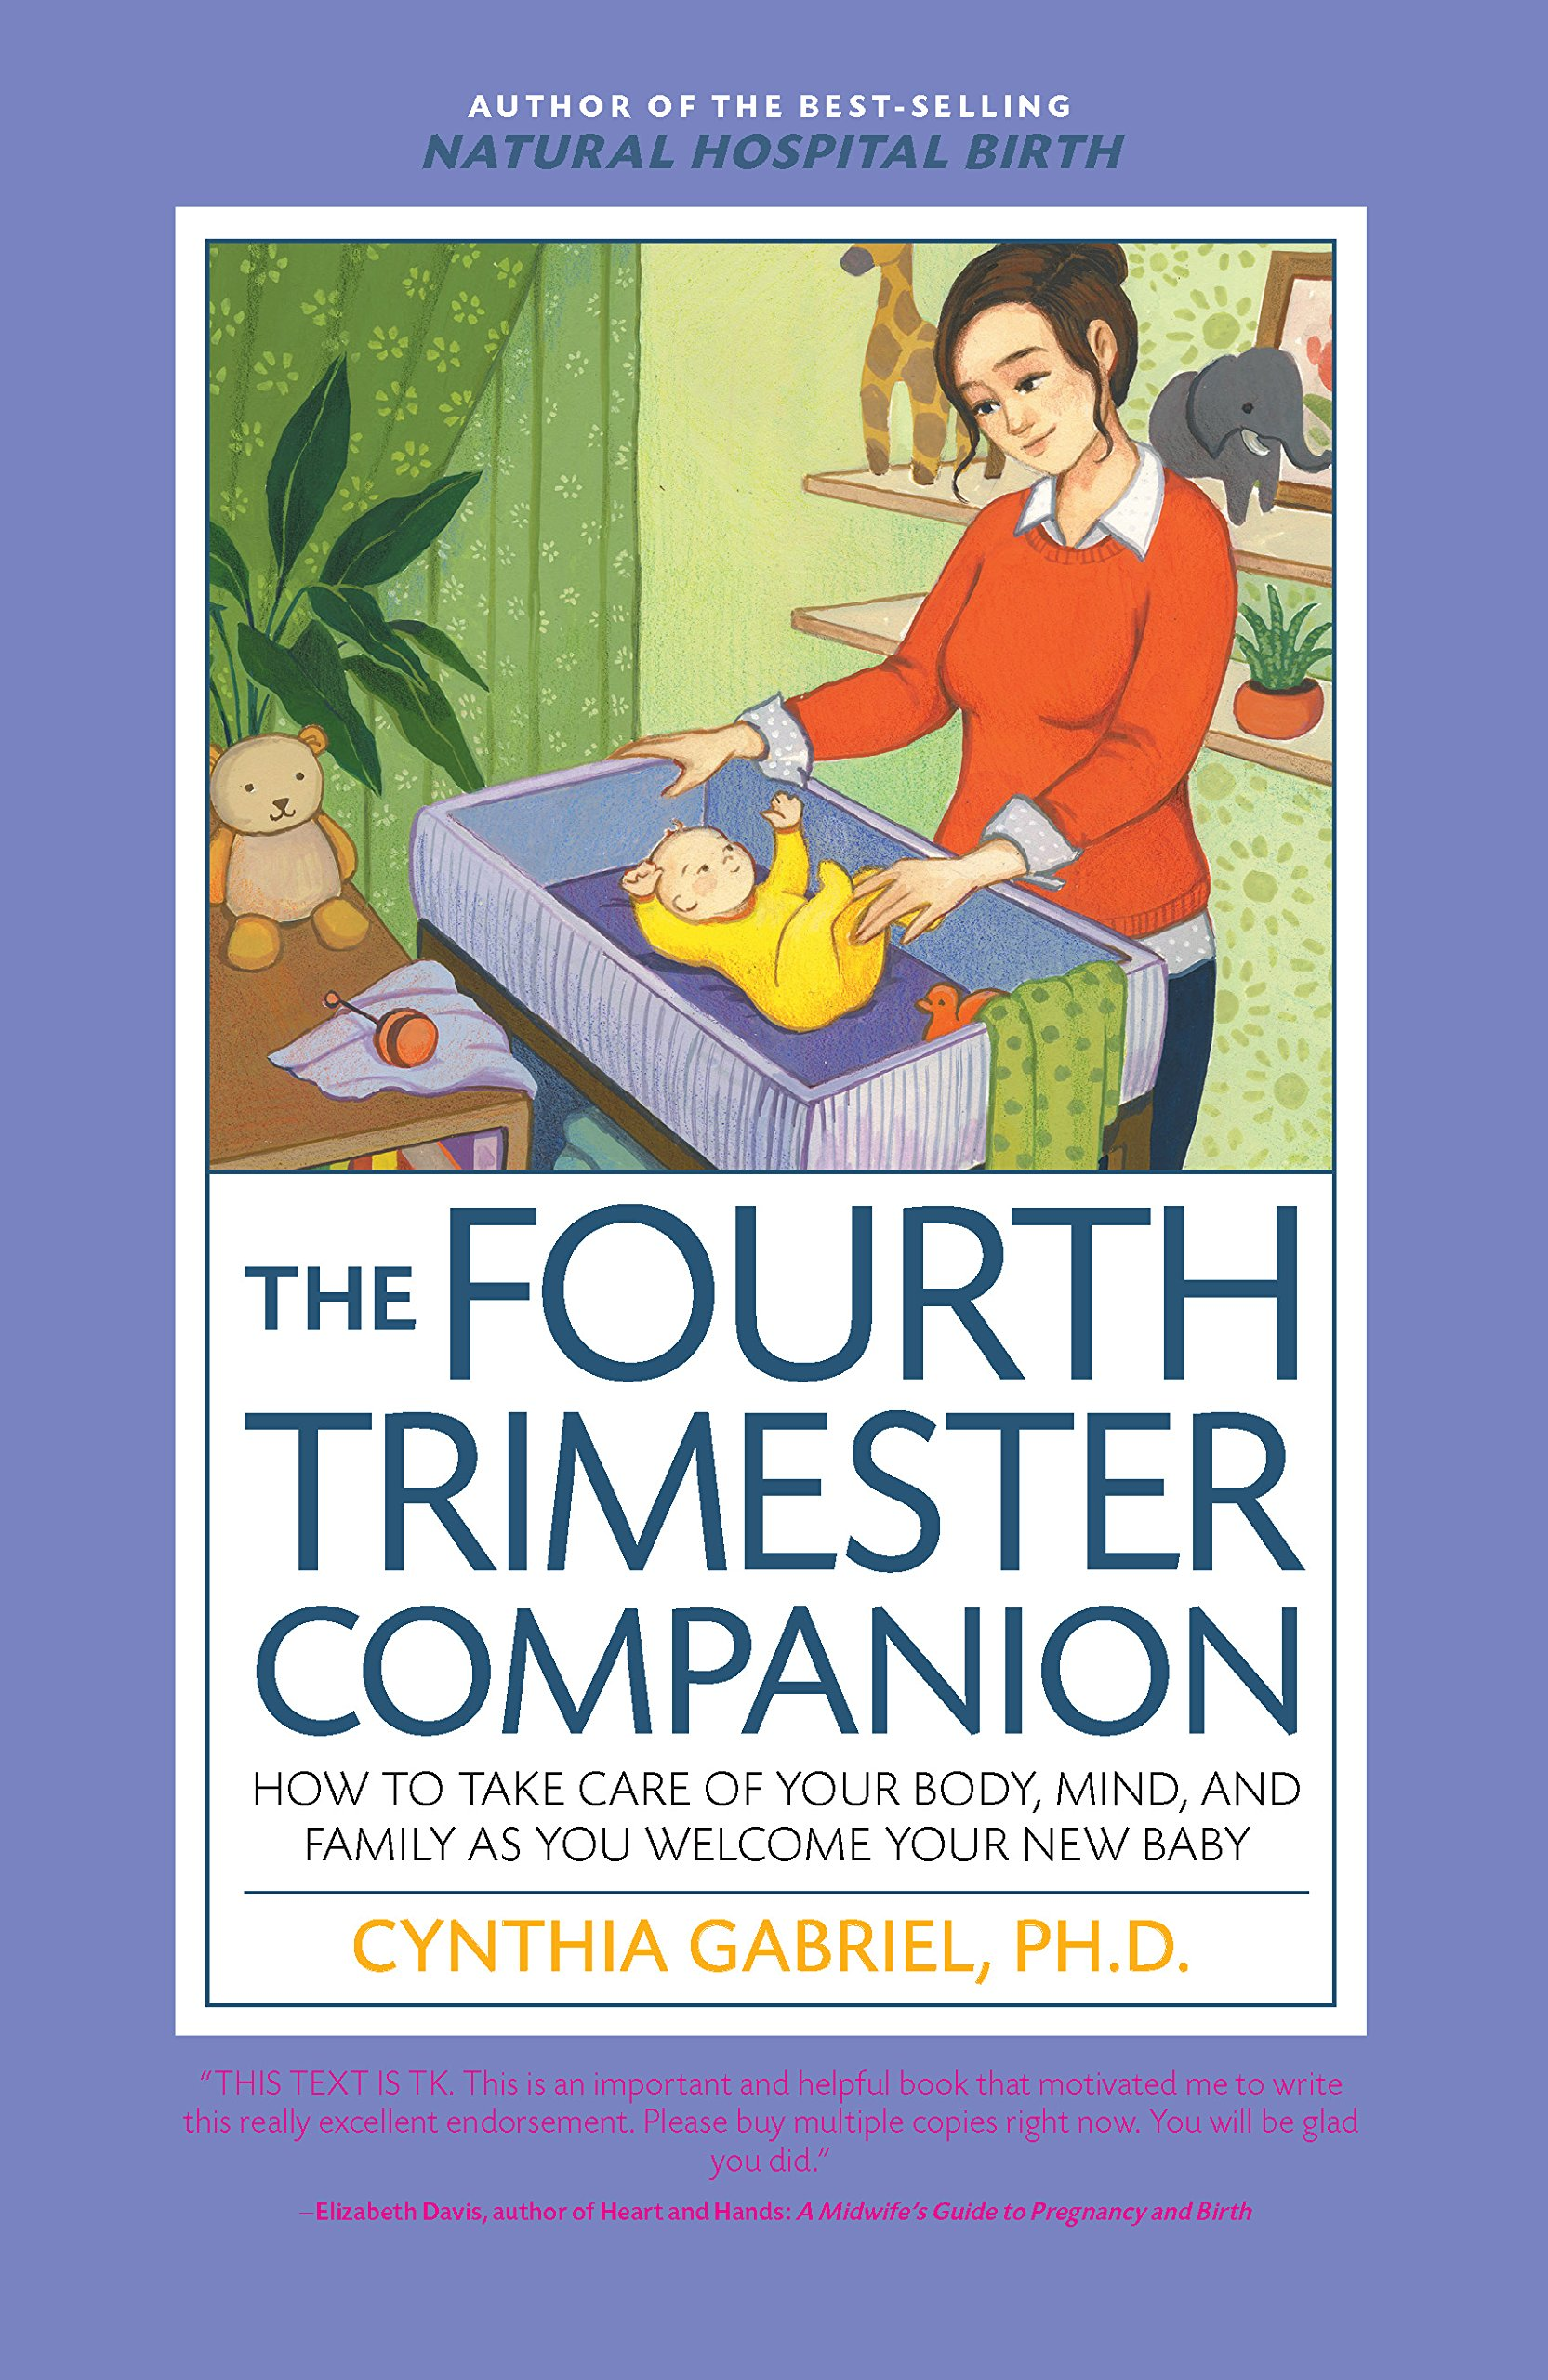 Image result for The Fourth Trimester Companion: How To Take Care of Your Body, Mind, and Family as You Welcome Your New Baby